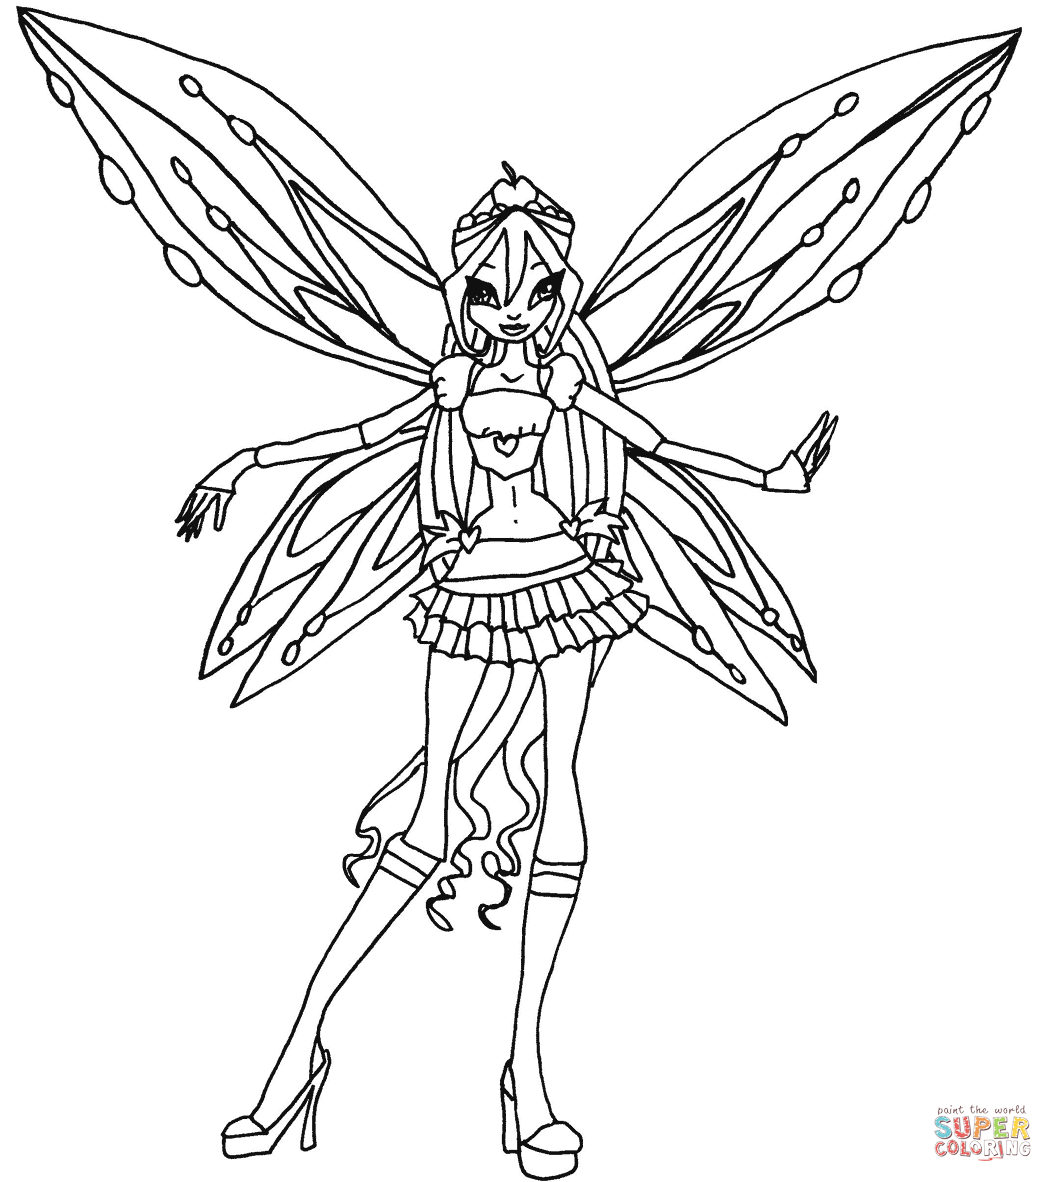 Winx Coloring Pages With Winx Club  Coloring books, Coloring